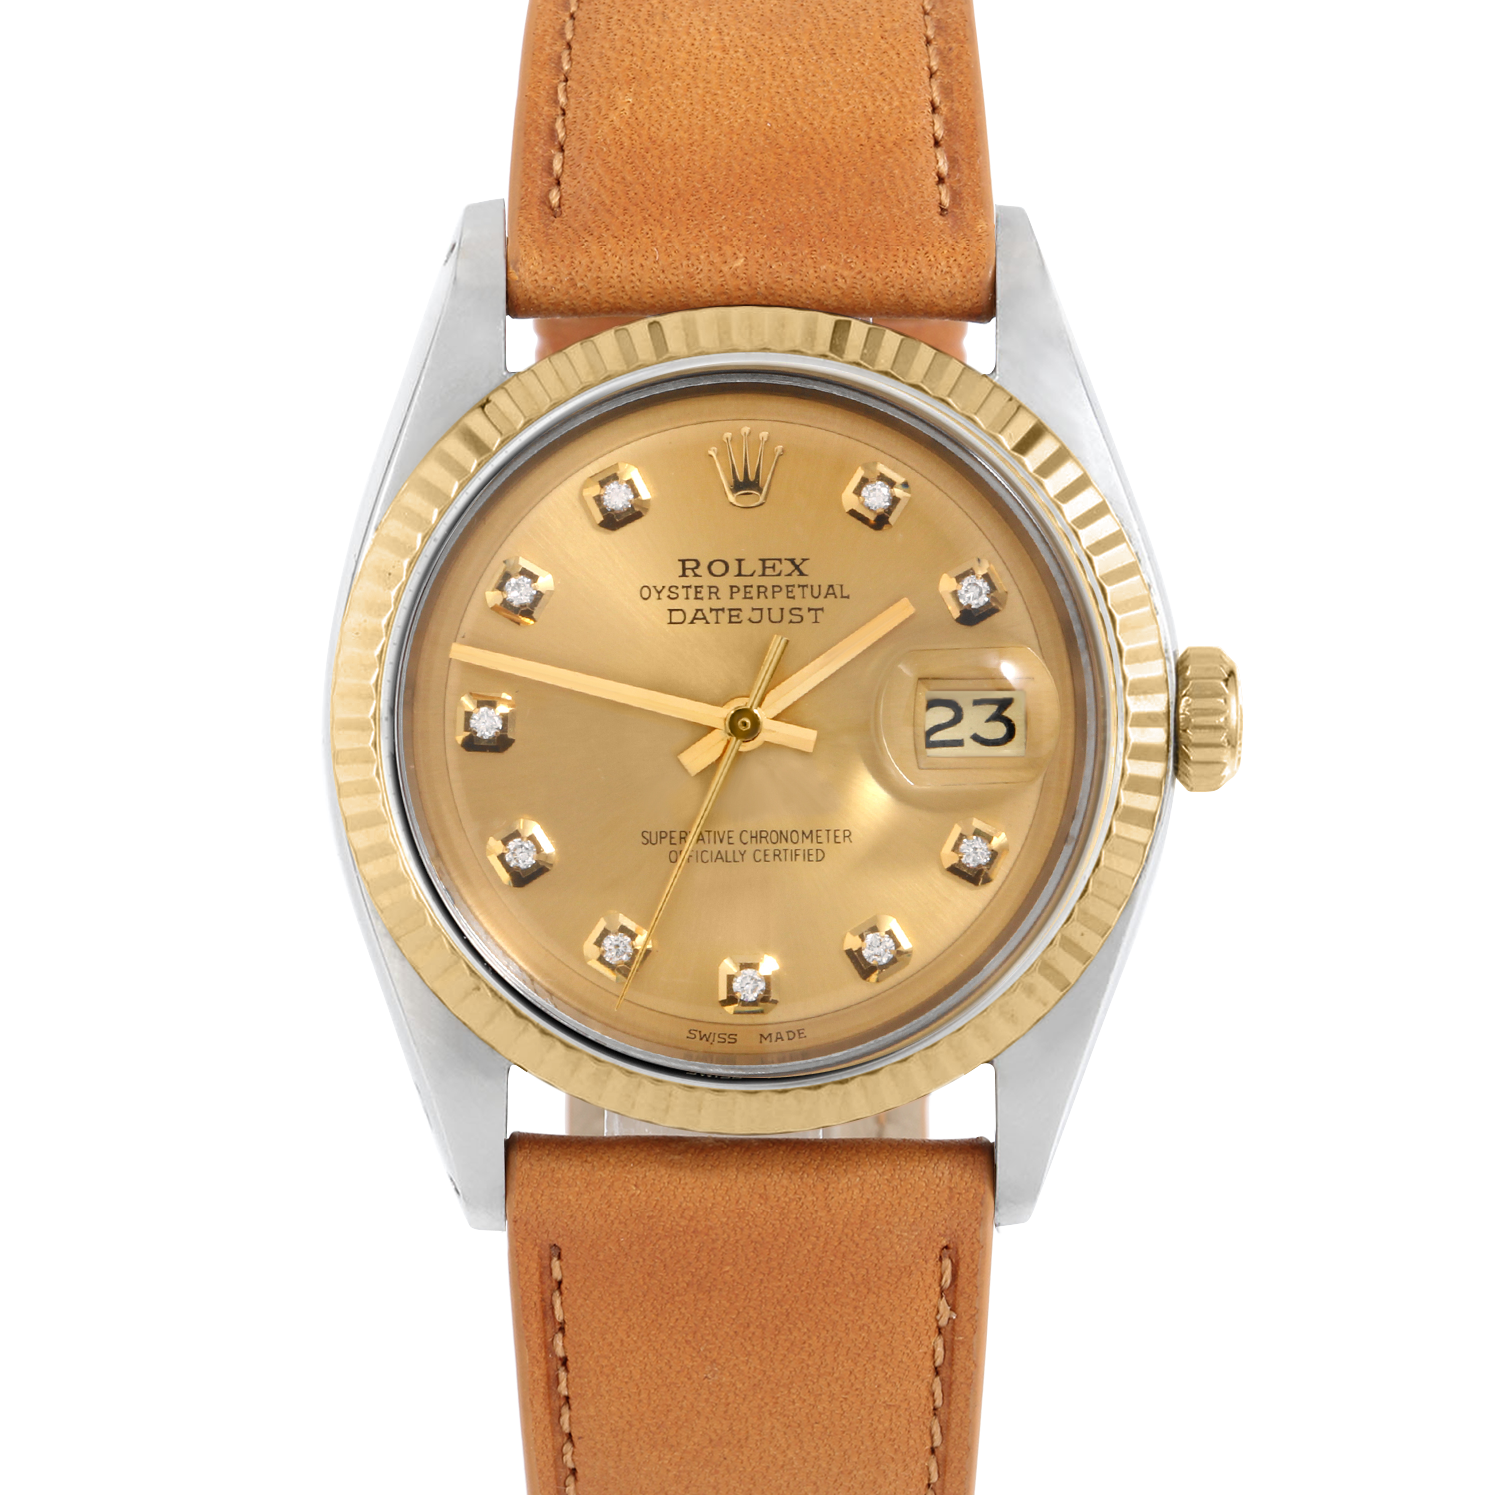 Rolex Datejust 36 1601 Yellow Gold & Stainless Steel, Custom Champagne Diamond, Fluted Bezel On A Tan Calf Leather Strap - Men's Pre-Owned Watch